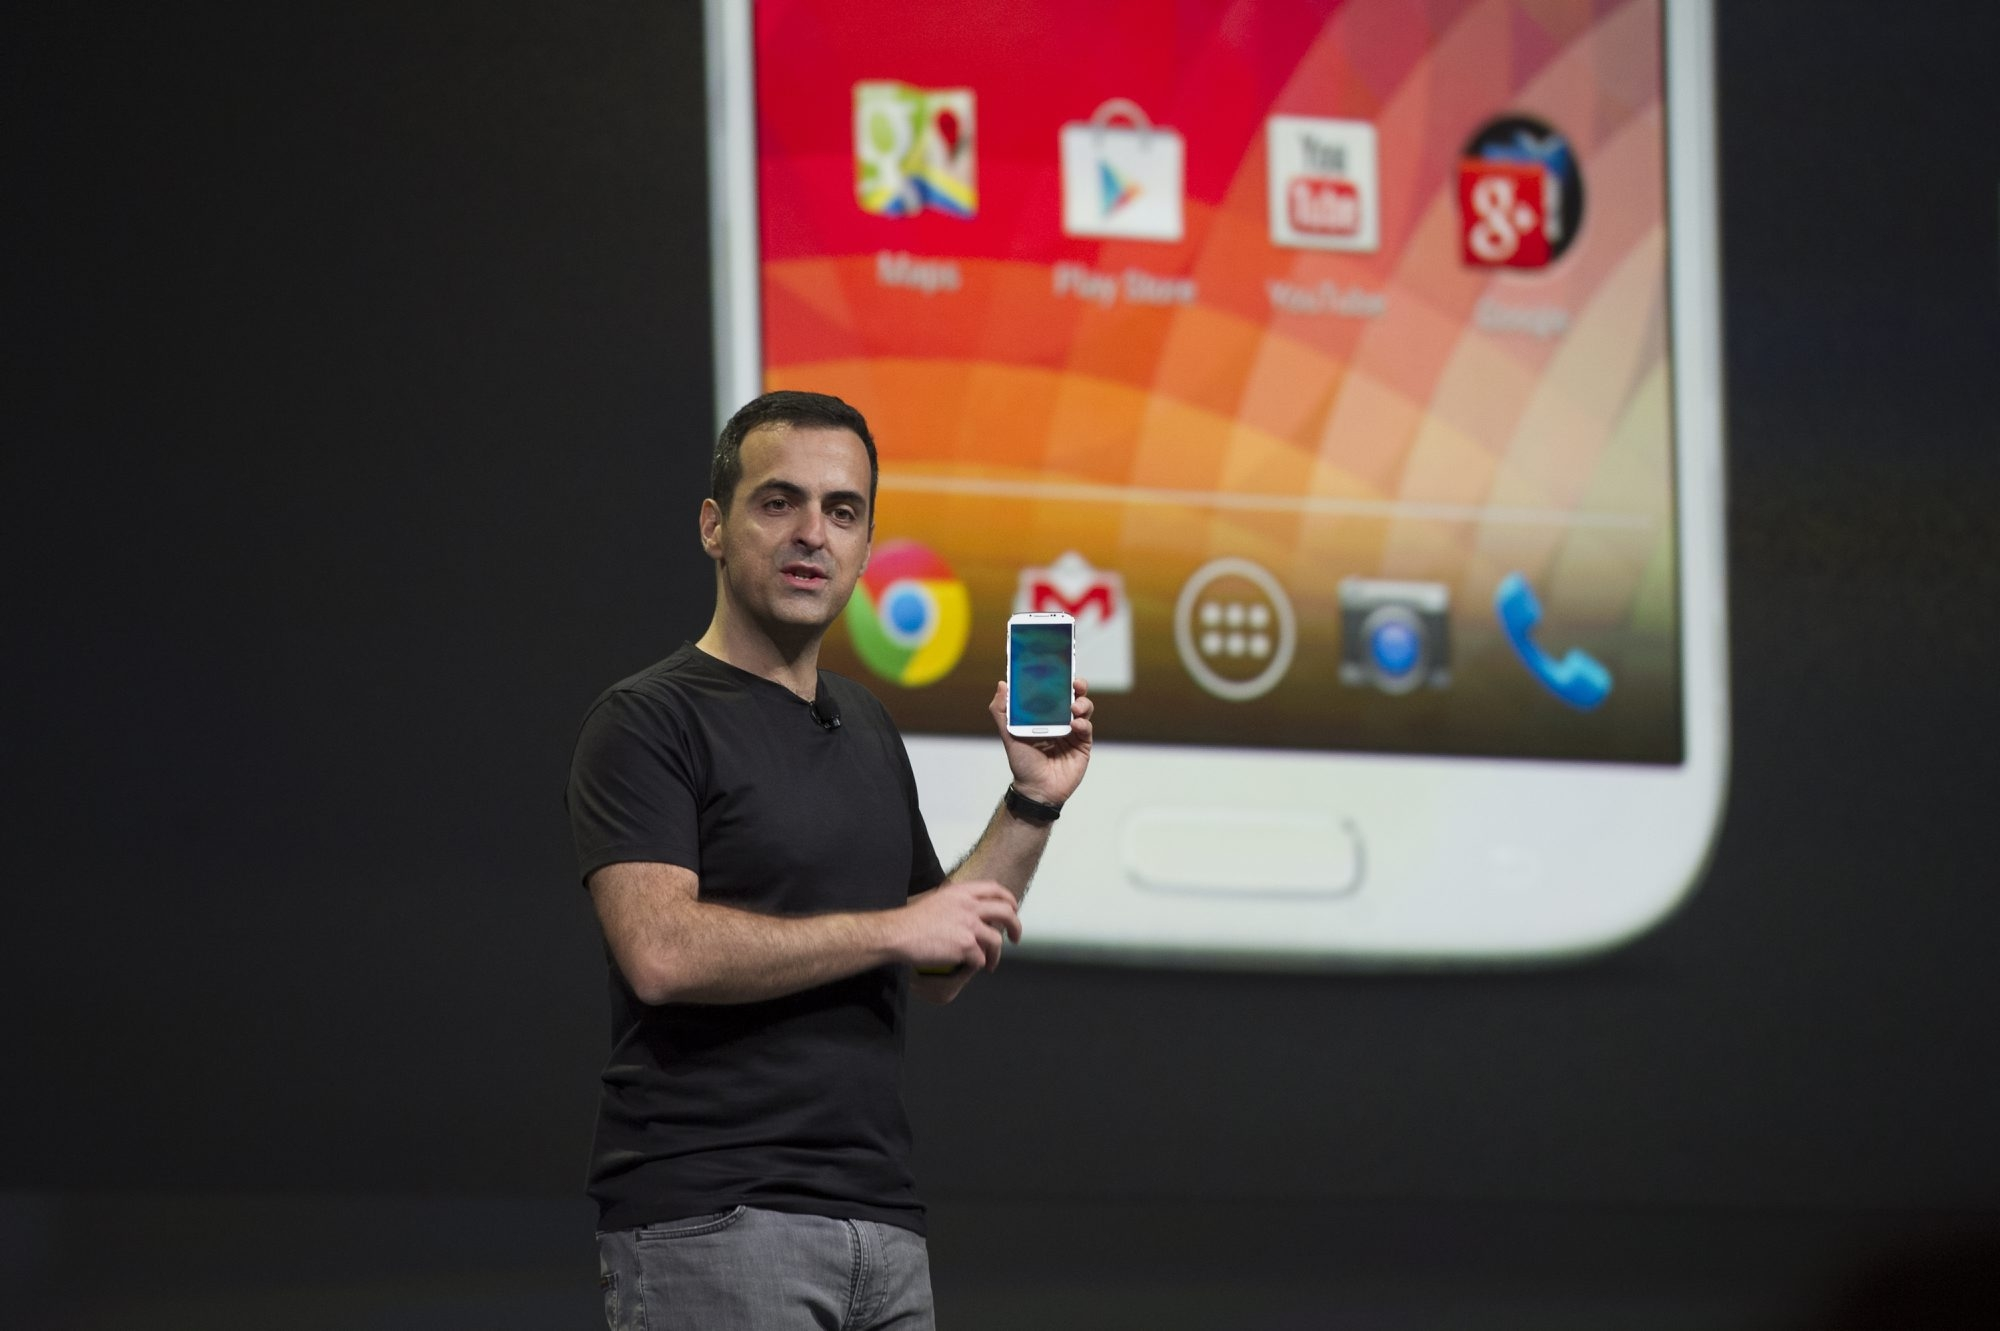 Hugo Barra, vice president of product management for Android at Google Inc., holds a Samsung Galaxy S4 Google Edition phone while speaking at the Google I/O Annual Developers Conference in San Francisco. Google's open software can make the phones vulnerable to hackers.